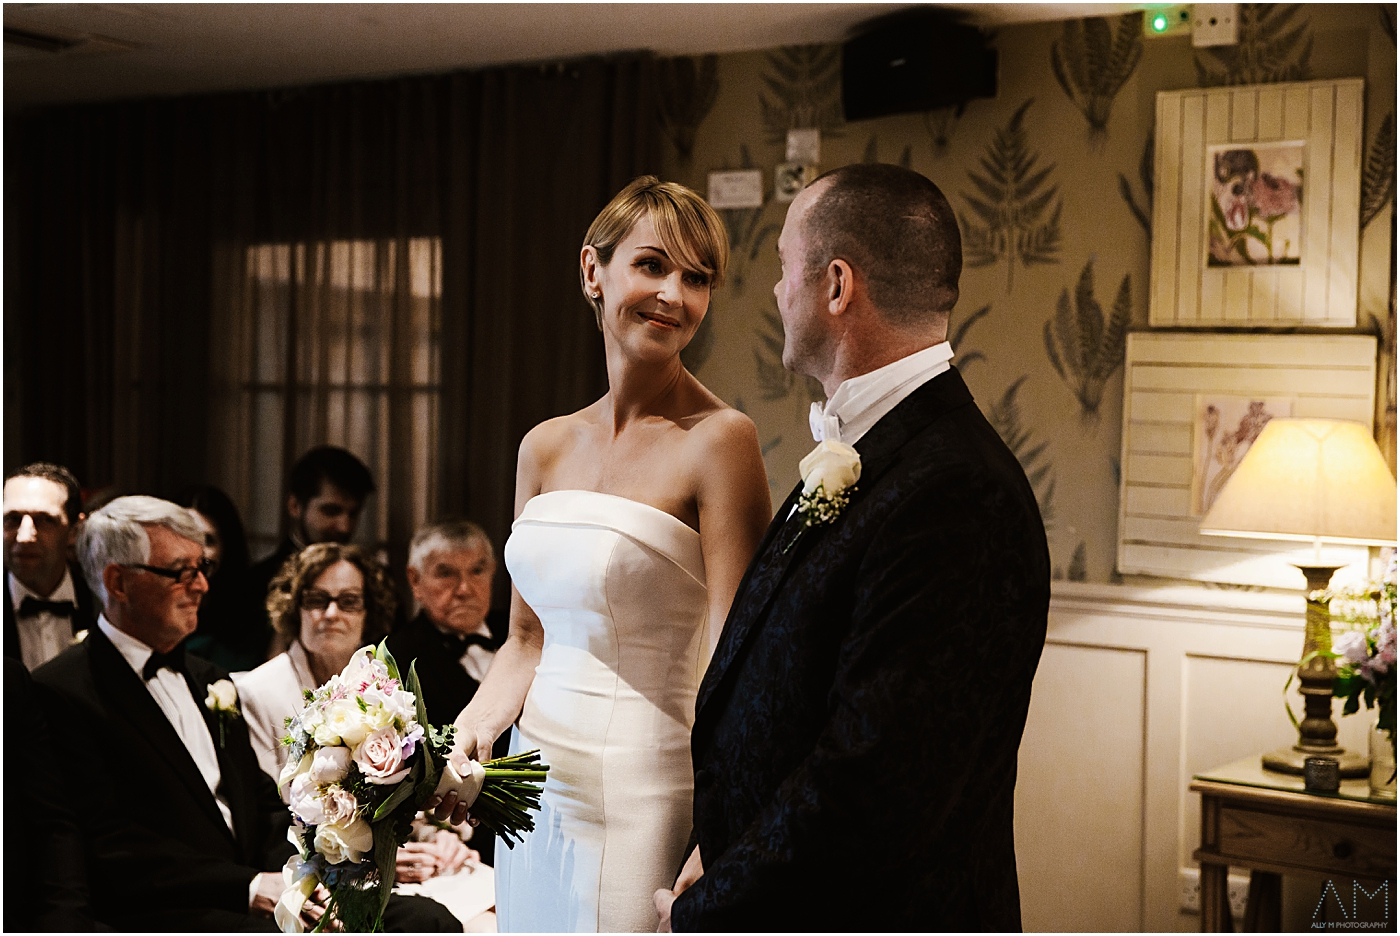 Bride and groom getting married at great John street Hotel